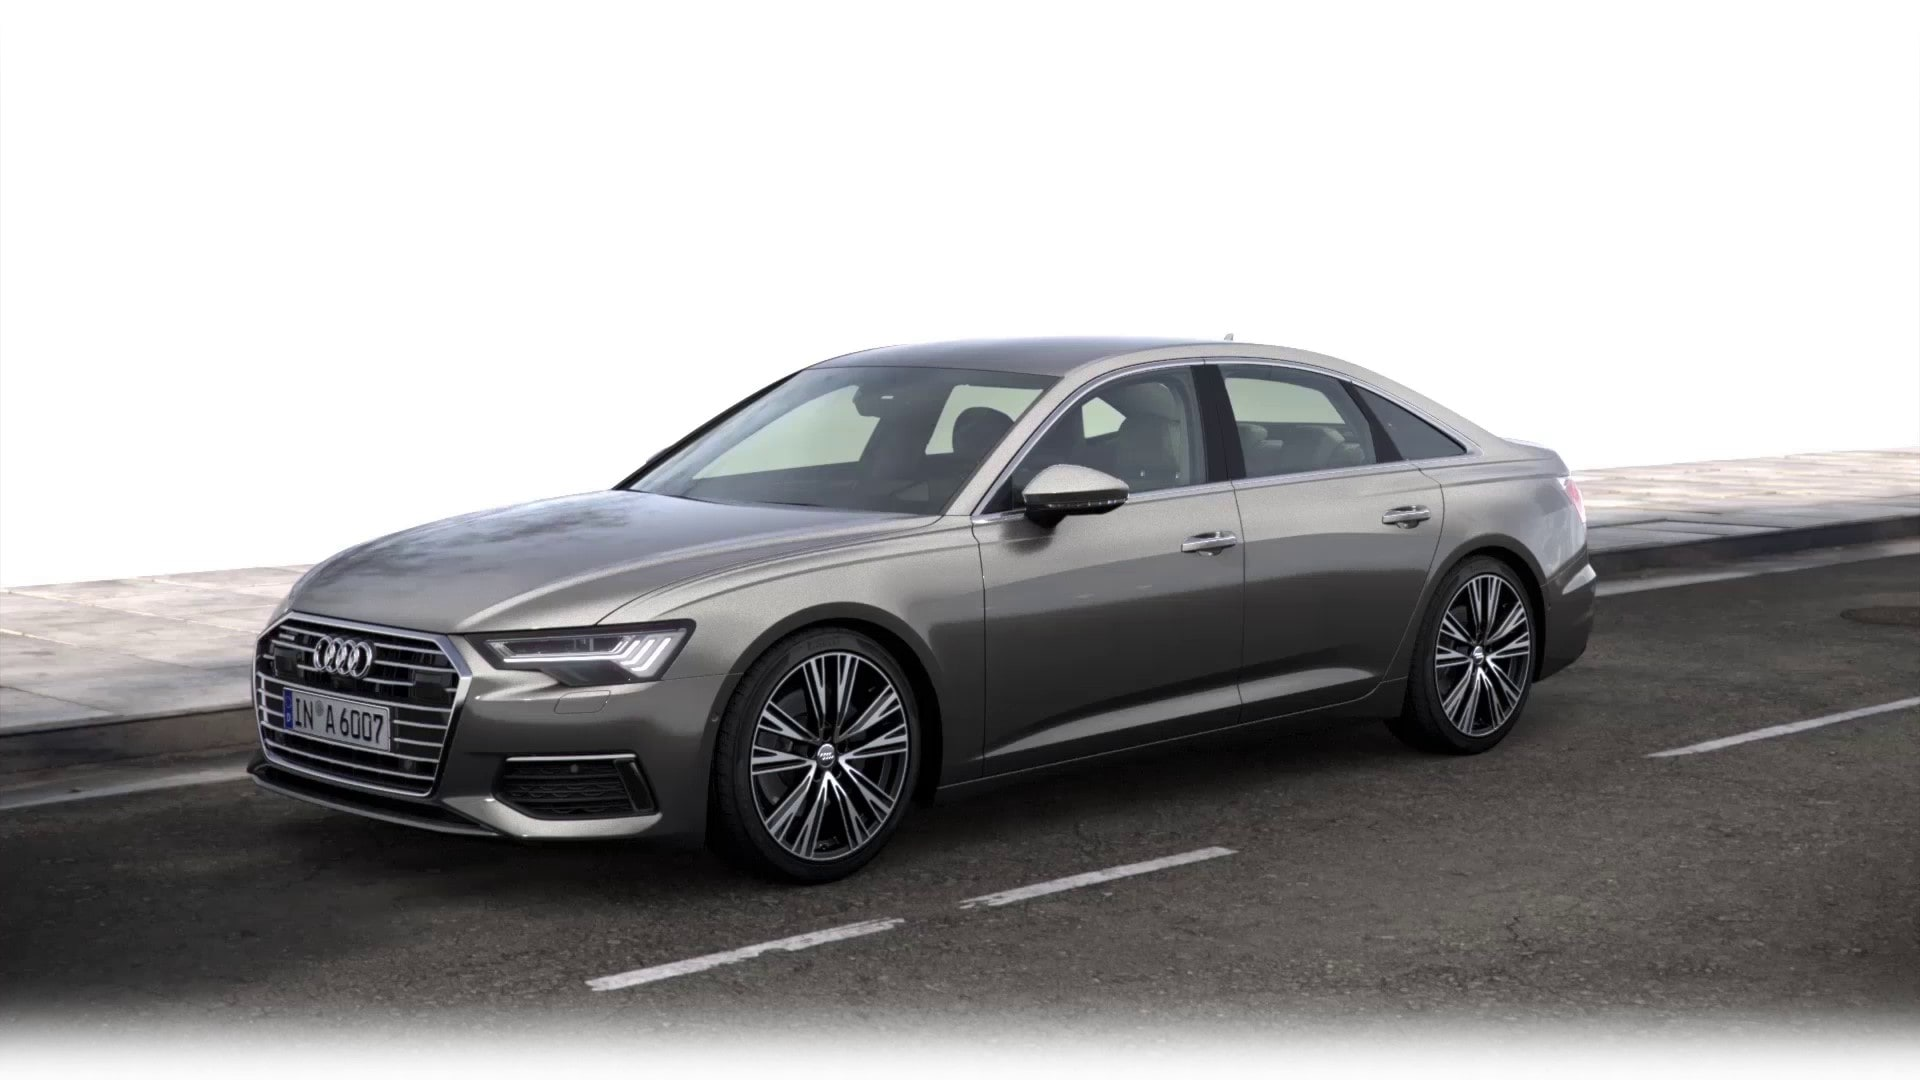 In India Audi A6 Lifestyle Edition Priced At Rs 49 99 Lakh Kwt Today